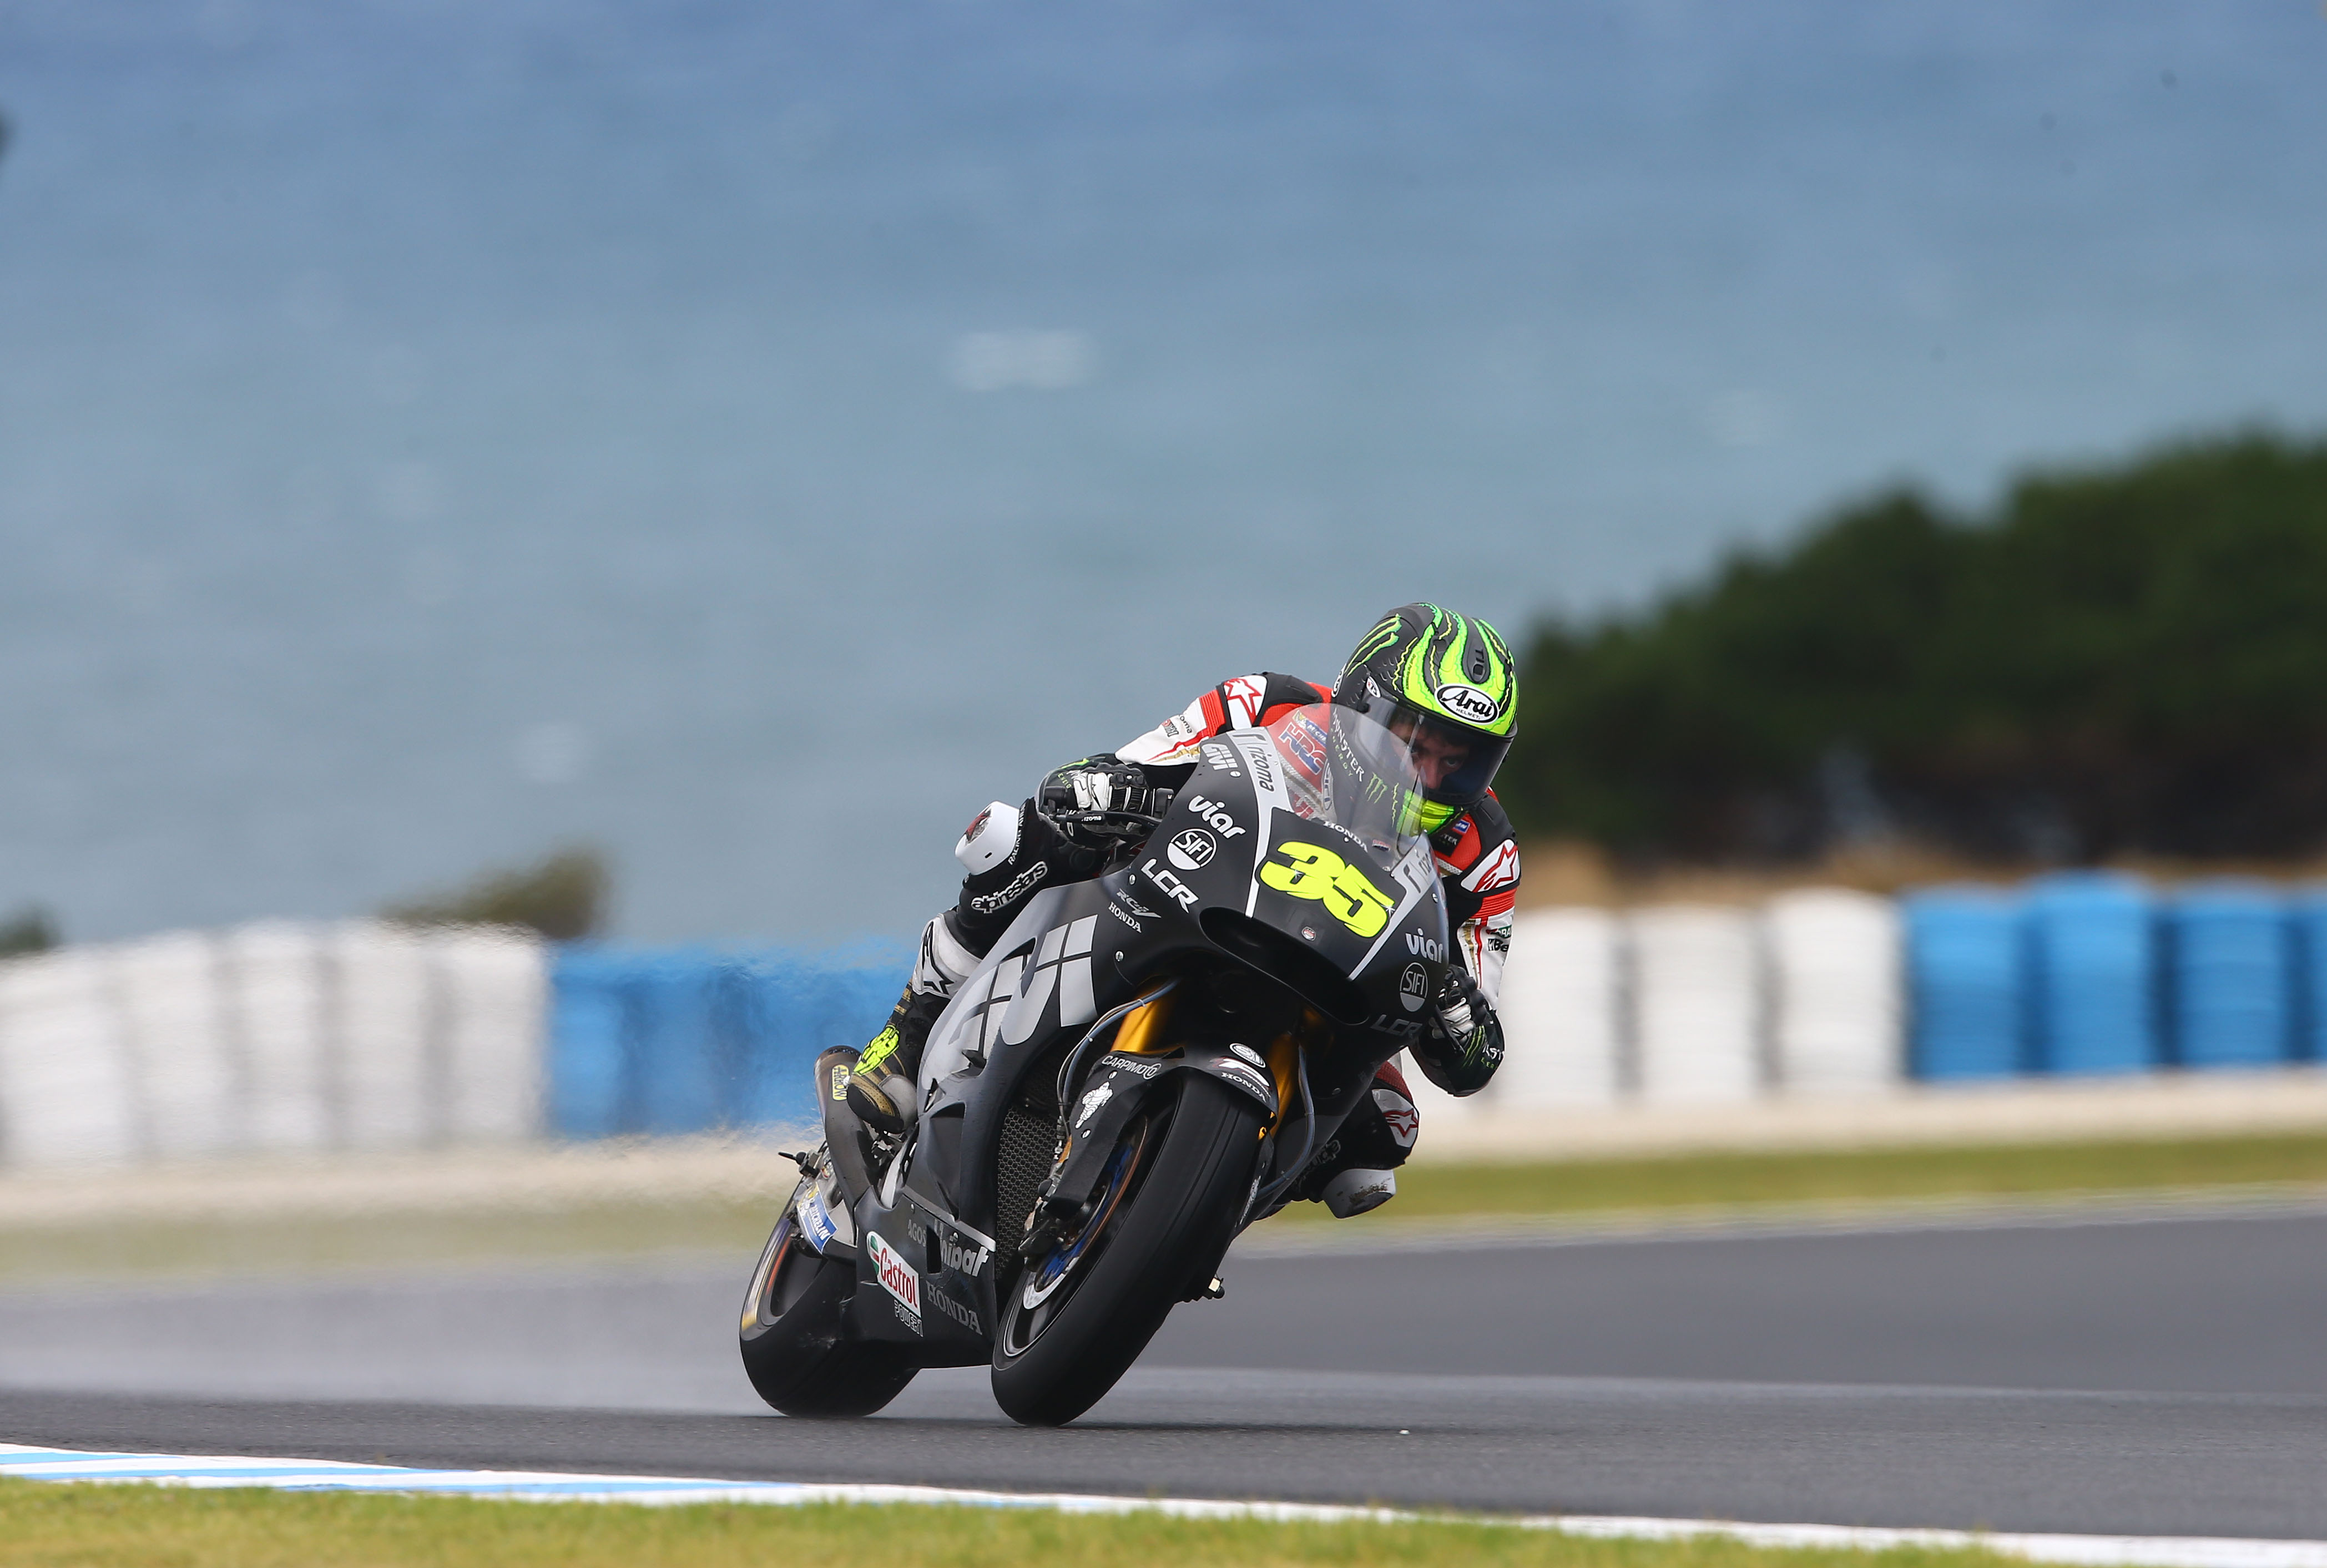 A 'wasted day' for Crutchlow